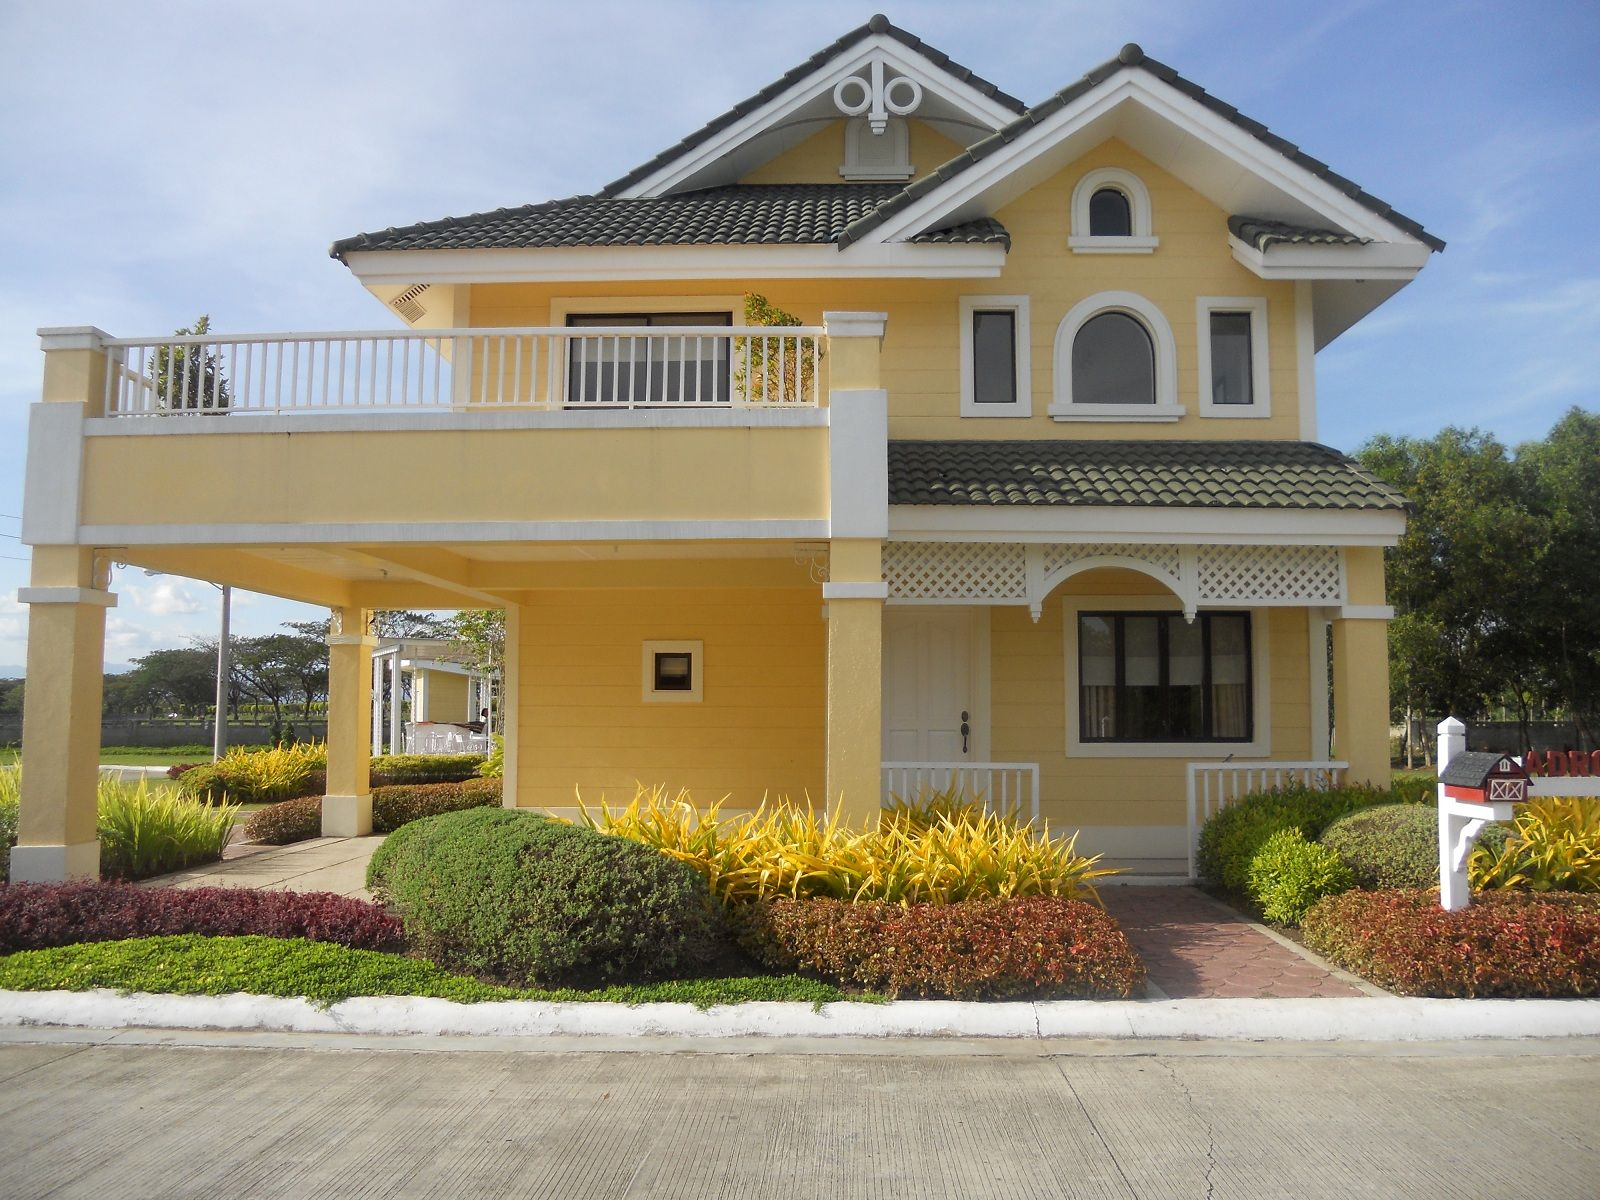 Philippine house plans and designs google search house for Searchable house plans